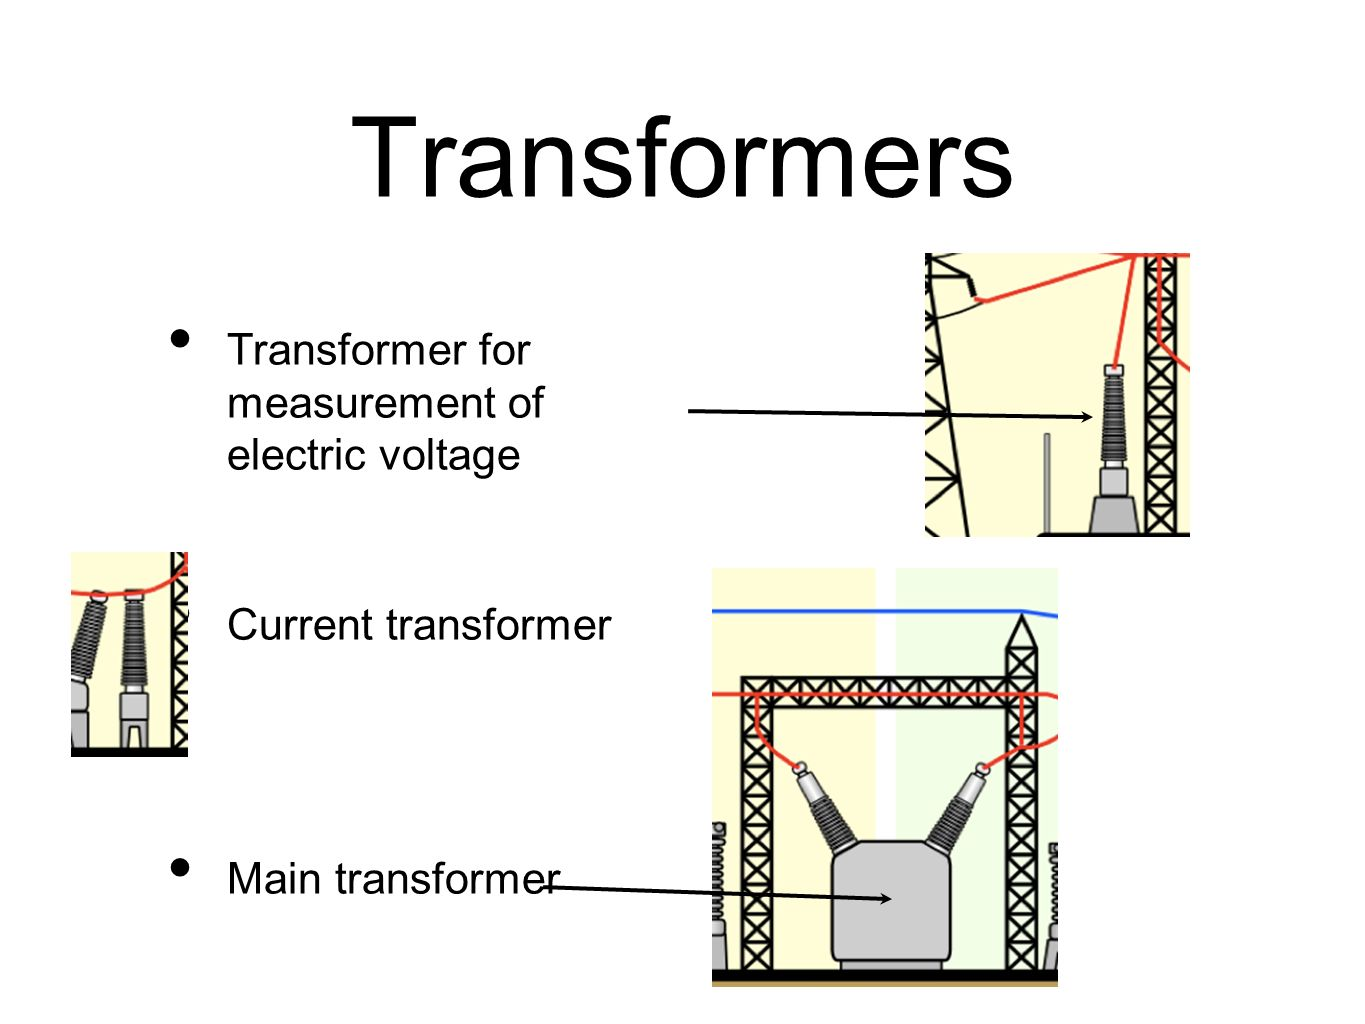 Transformers Transformer for measurement of electric voltage